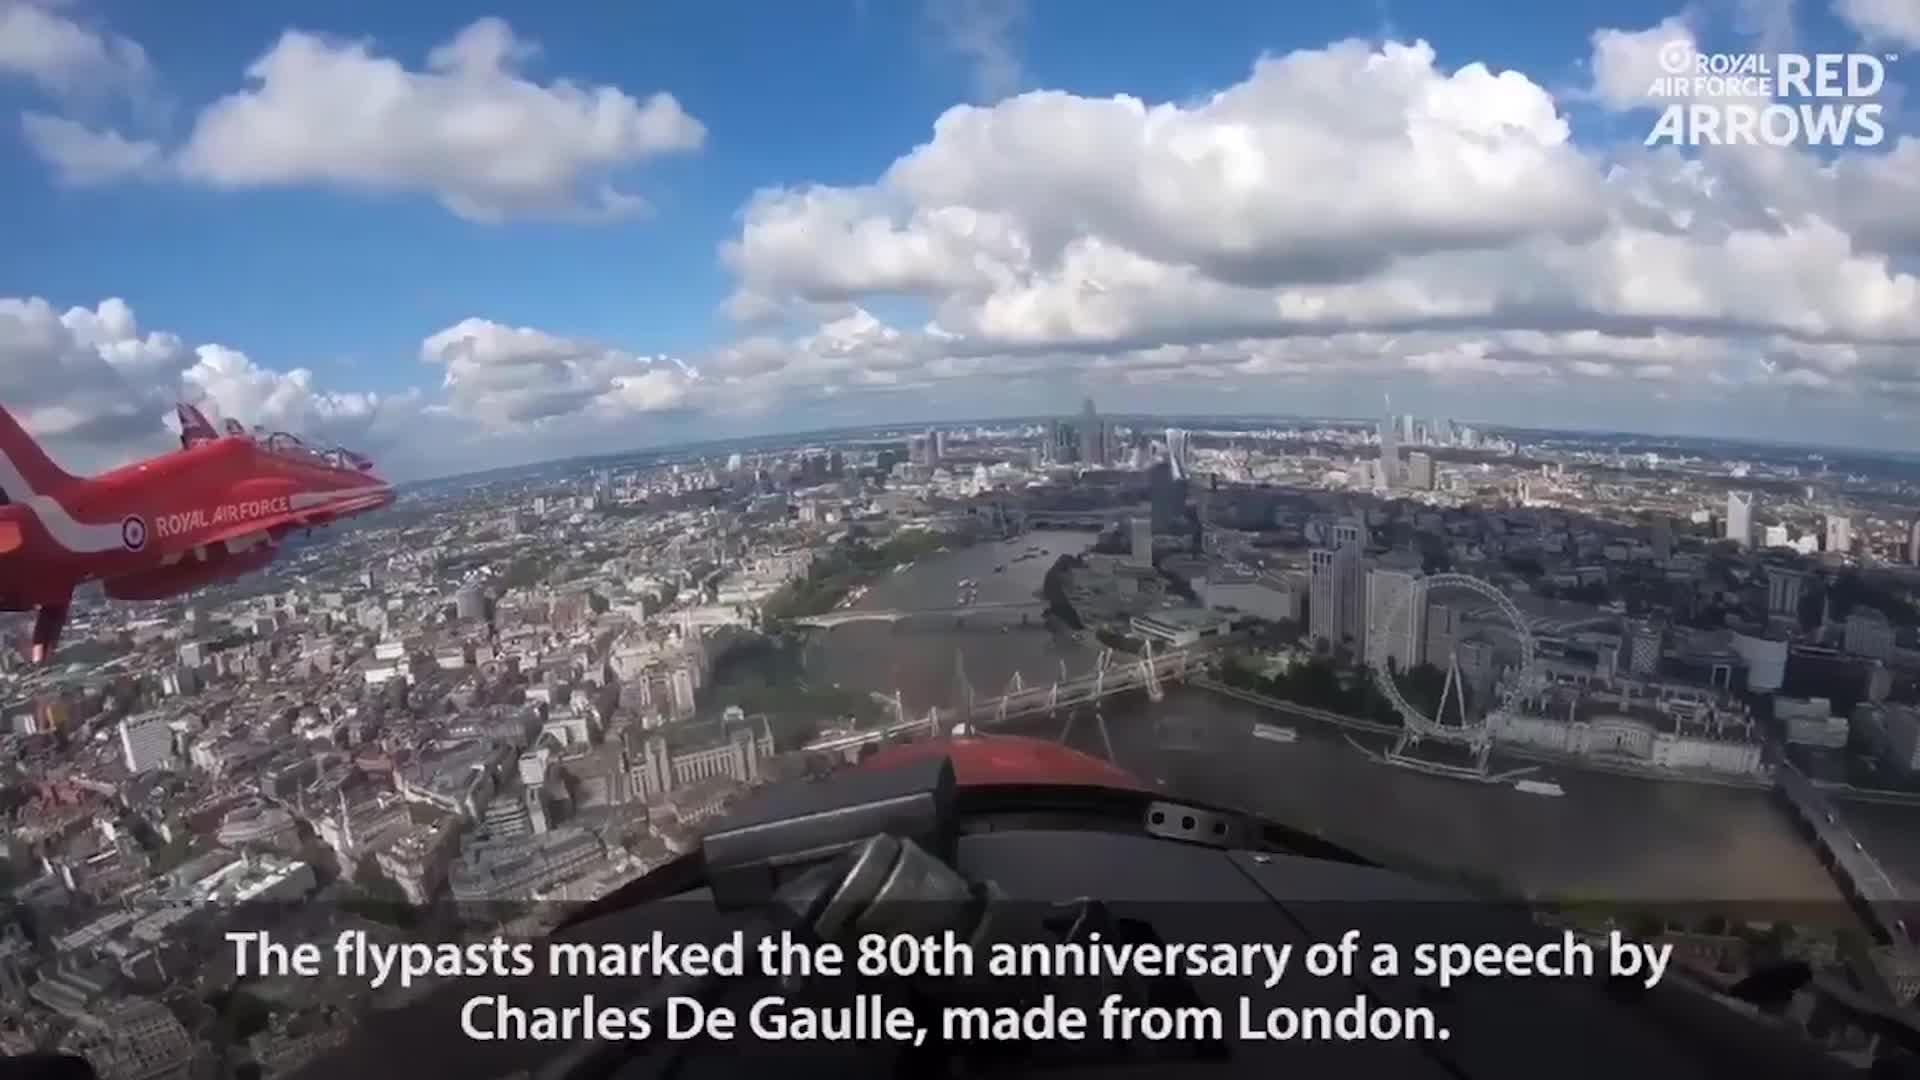 Red Arrows fly over London and Paris to mark Charles de Gaulle's to mark historic broadcast